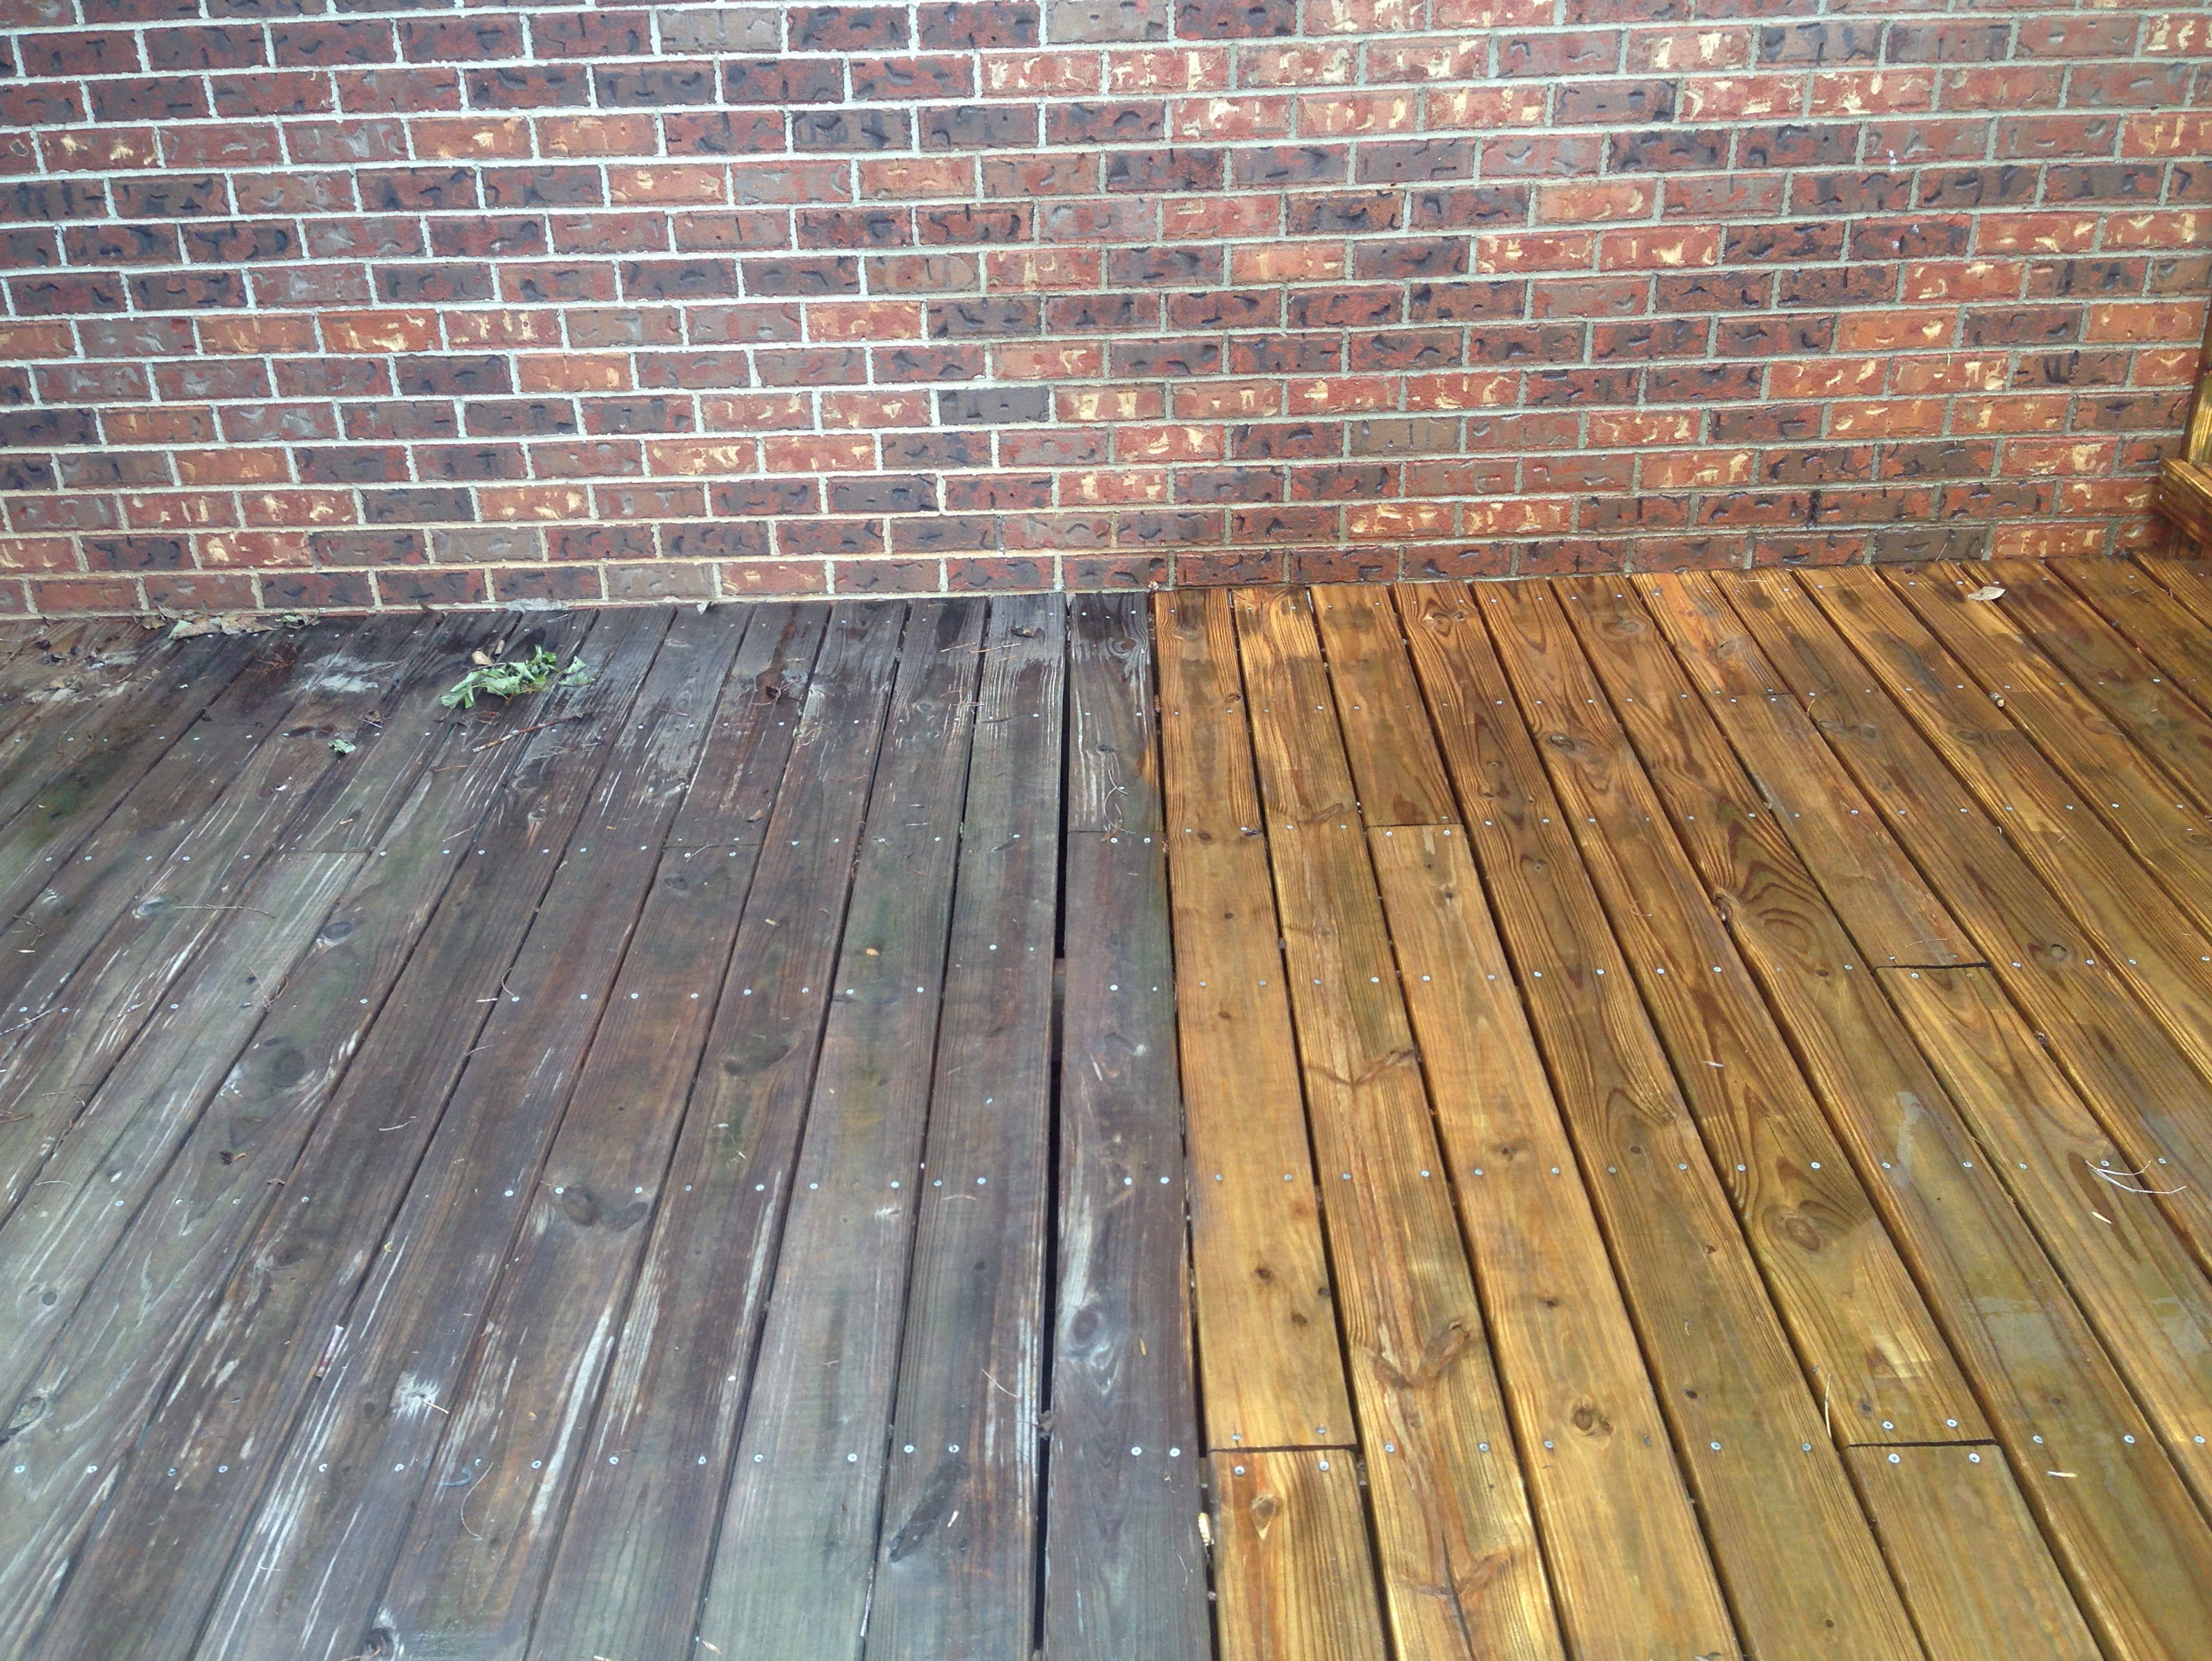 Power Washing Deck To Remove Stain Home Design Ideas